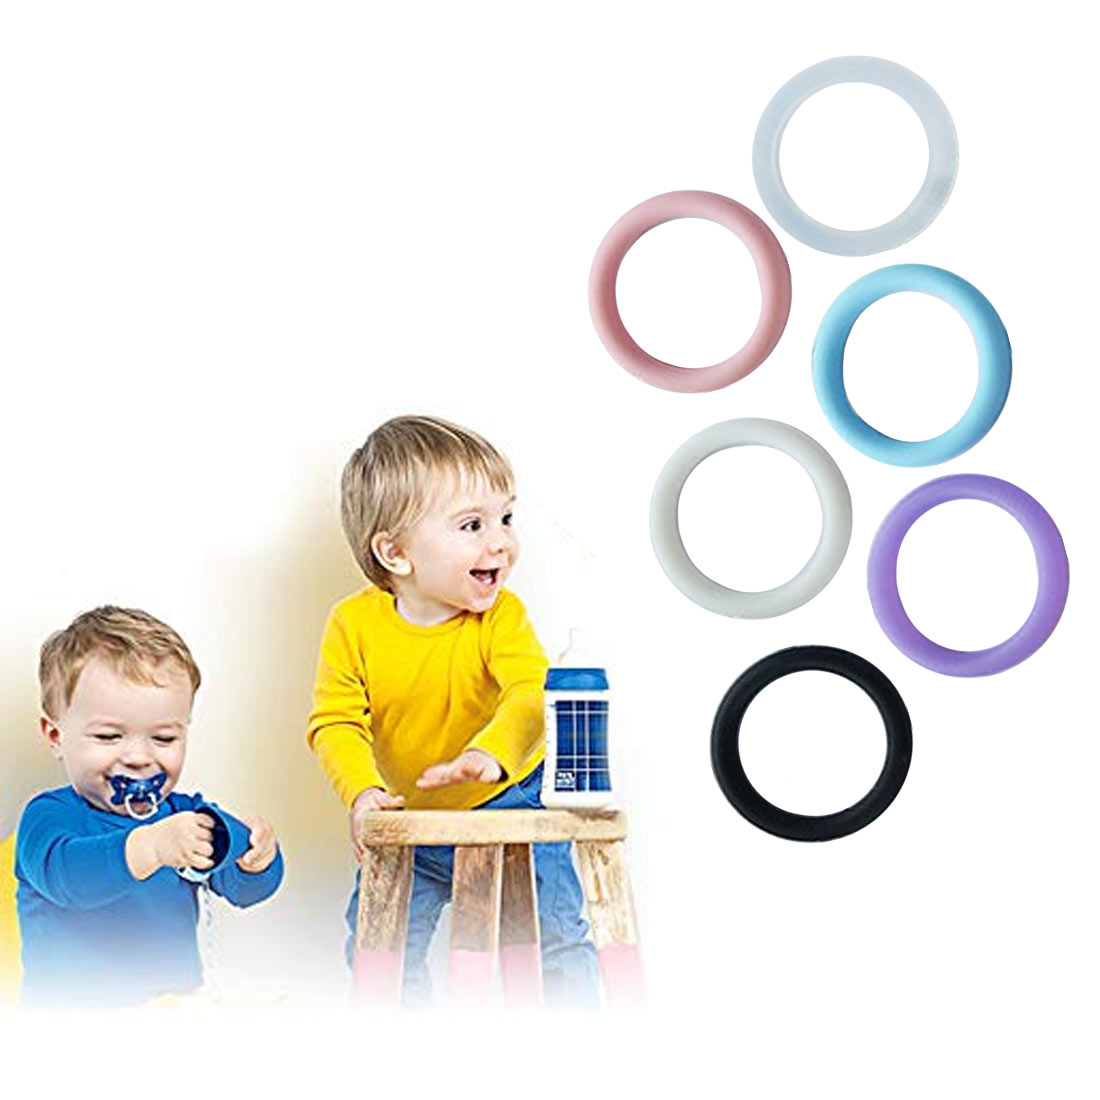 10PC O-Rings Silicone Baby Dummy Pacifier Chain Clips Adapter Holder for MAM Nipple & Accessories